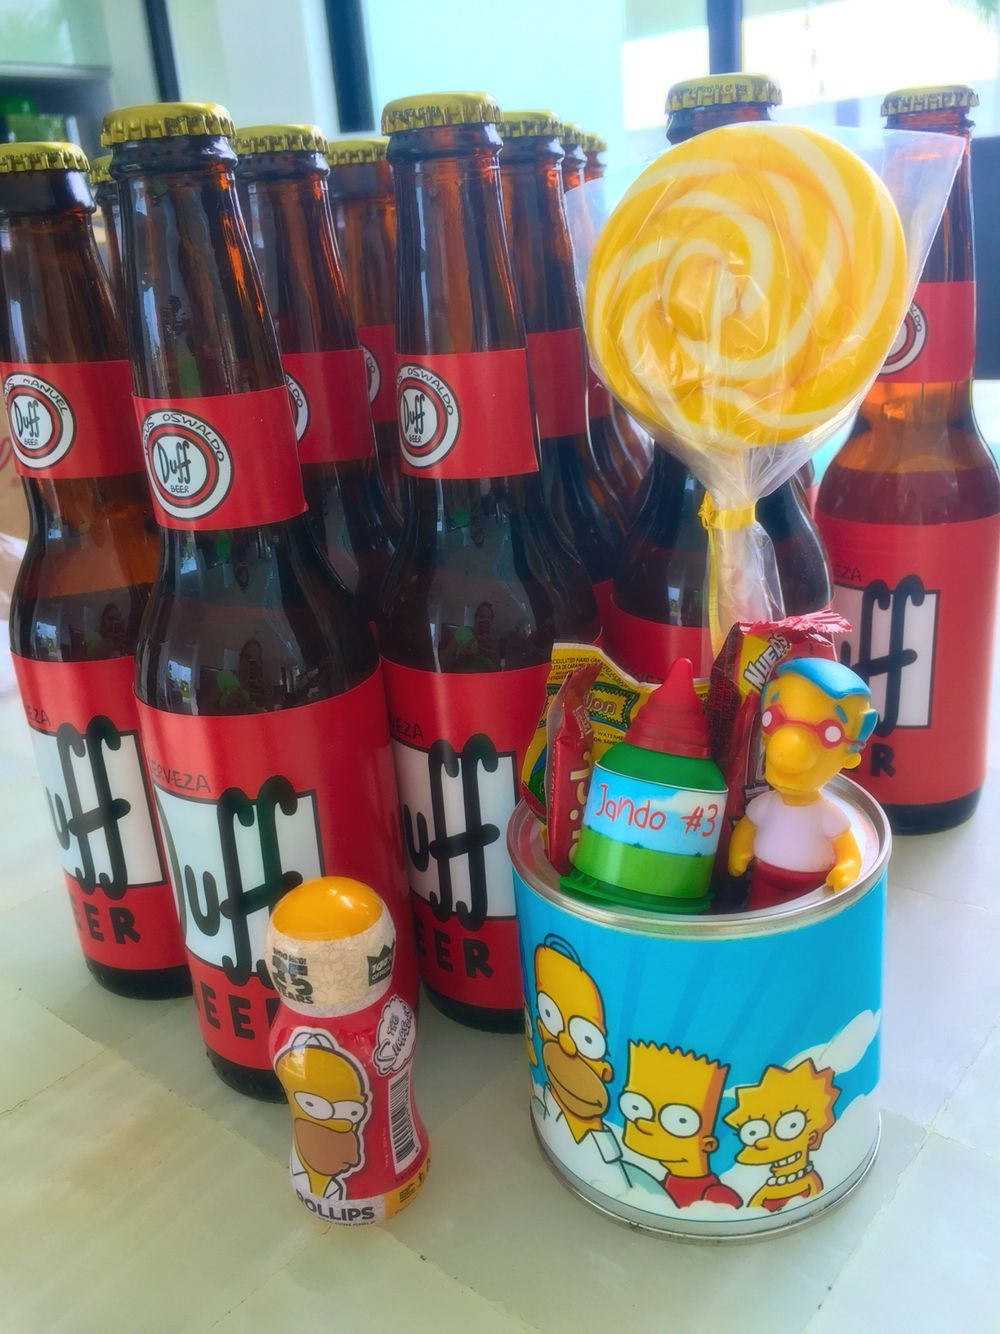 The Simpsons Simpsons Party Kids Birthday Party Birthday Theme